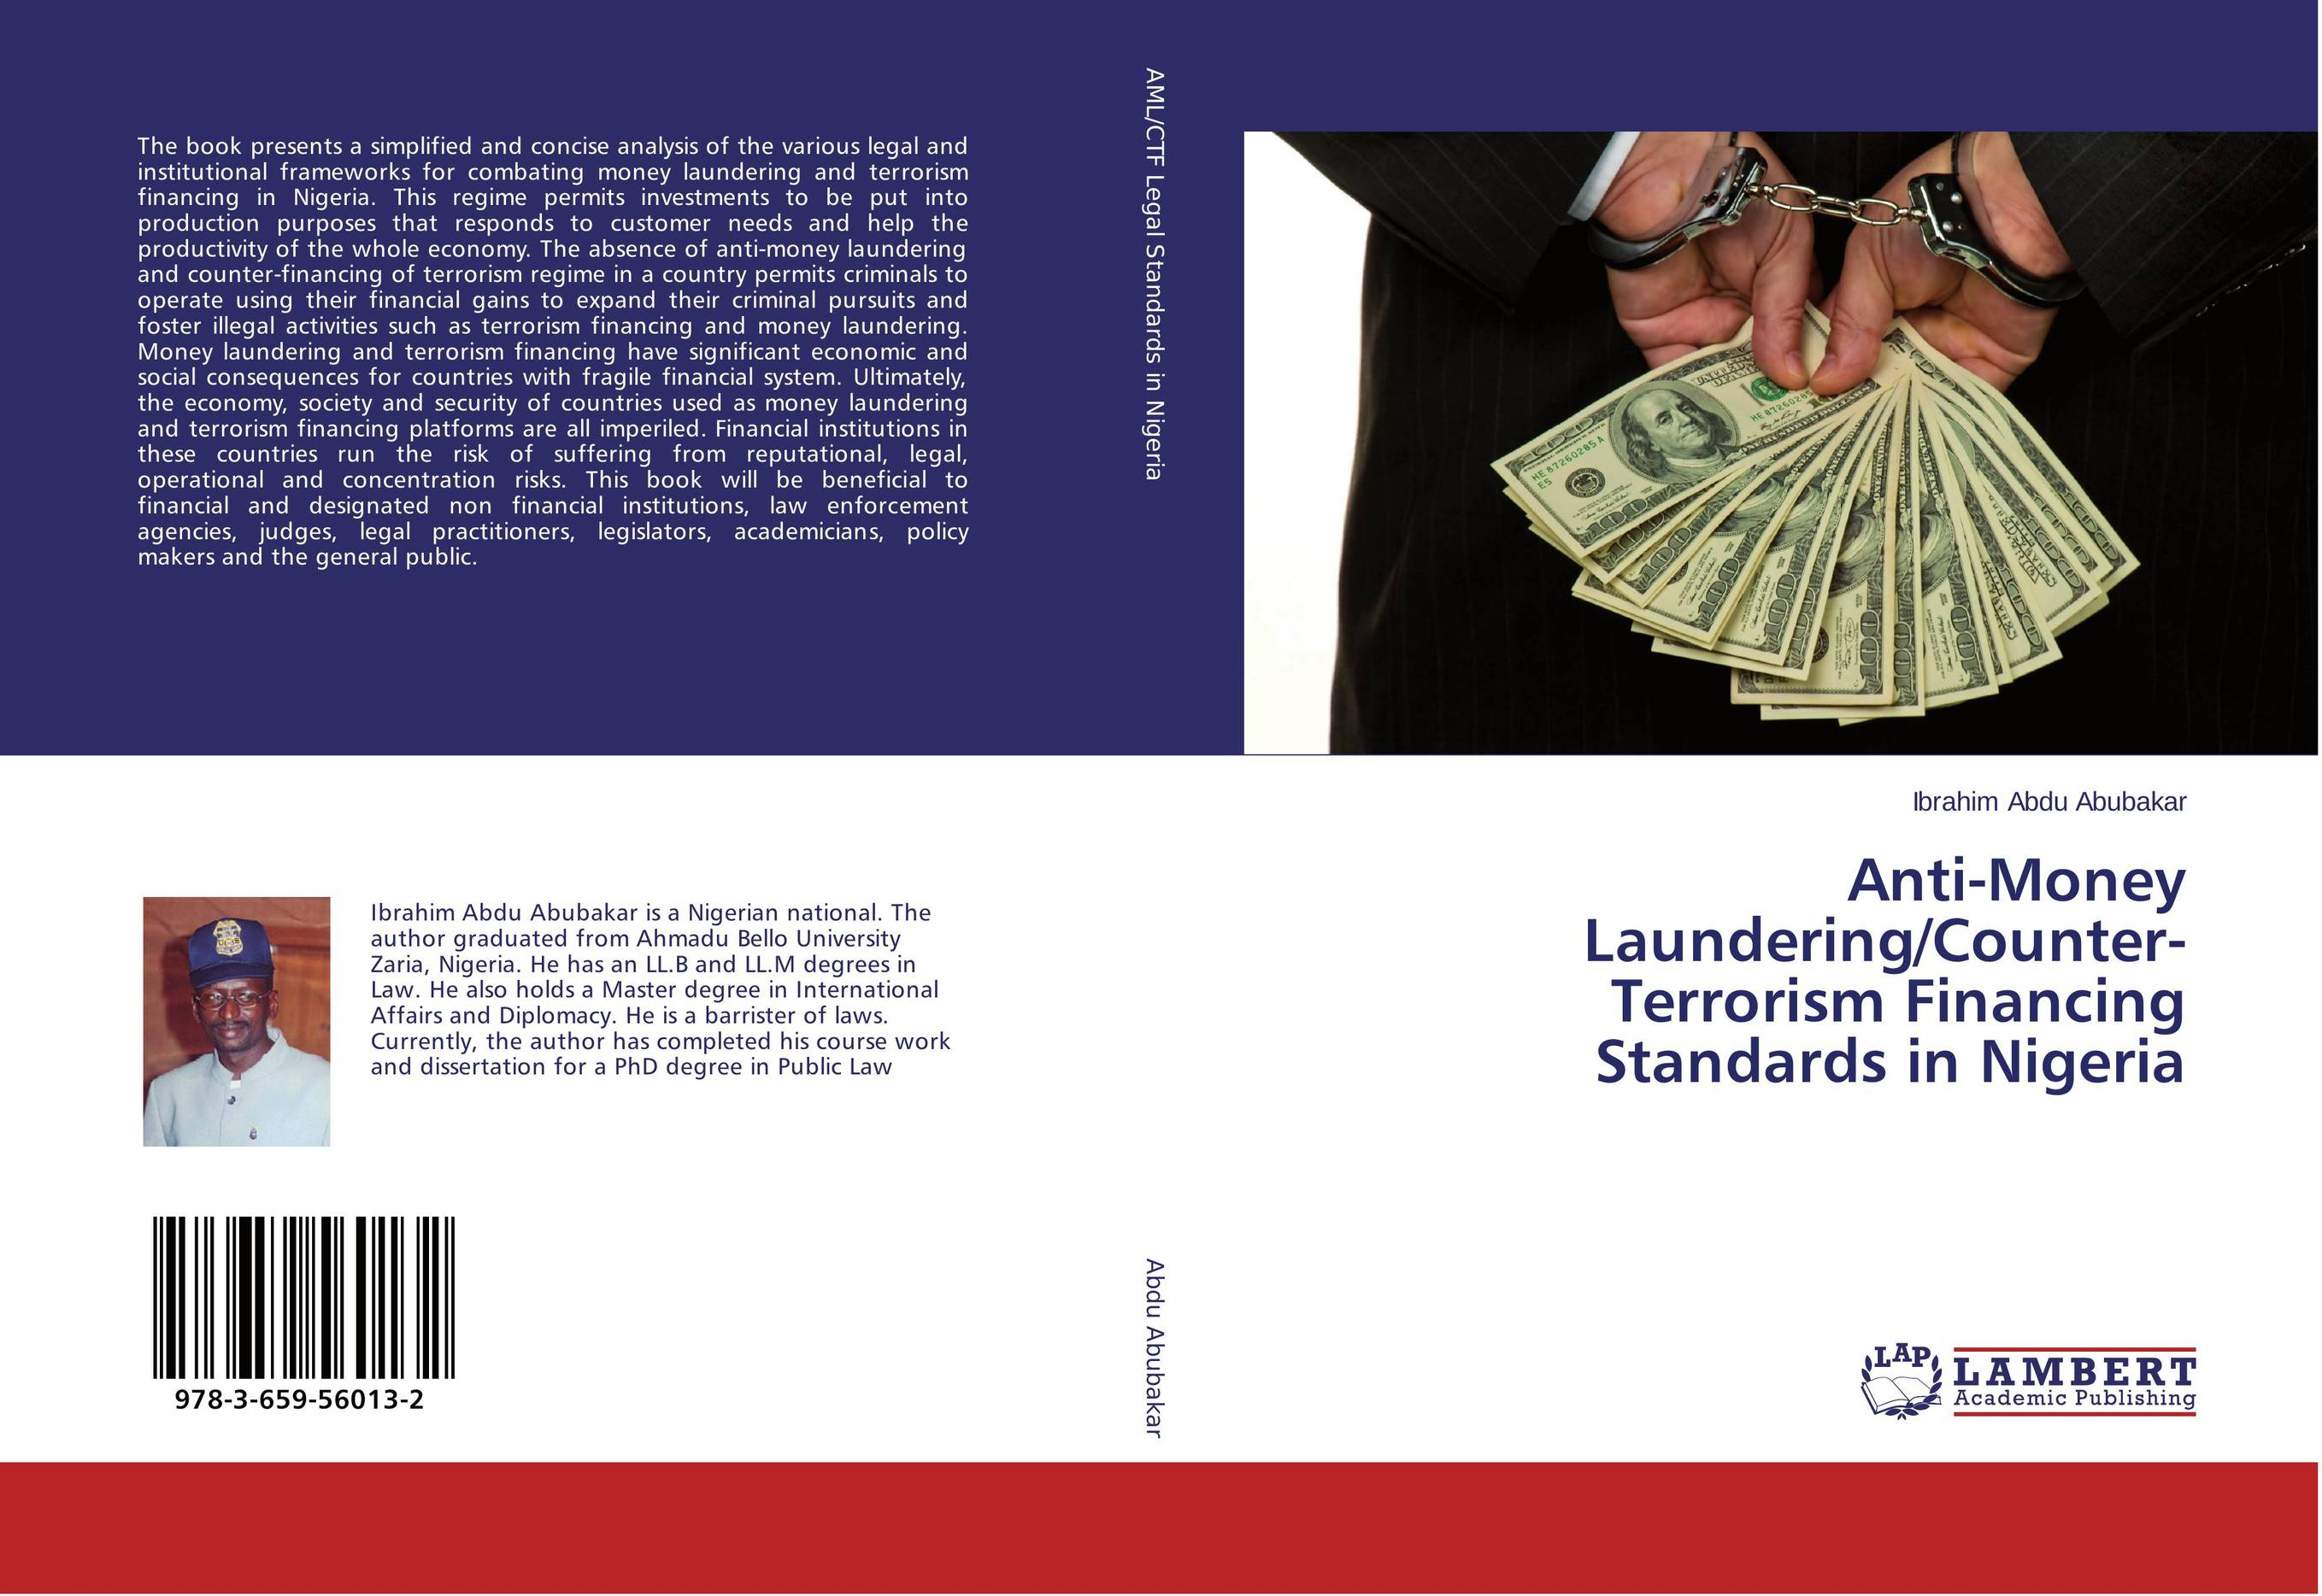 nigerian anti money laundering and combating